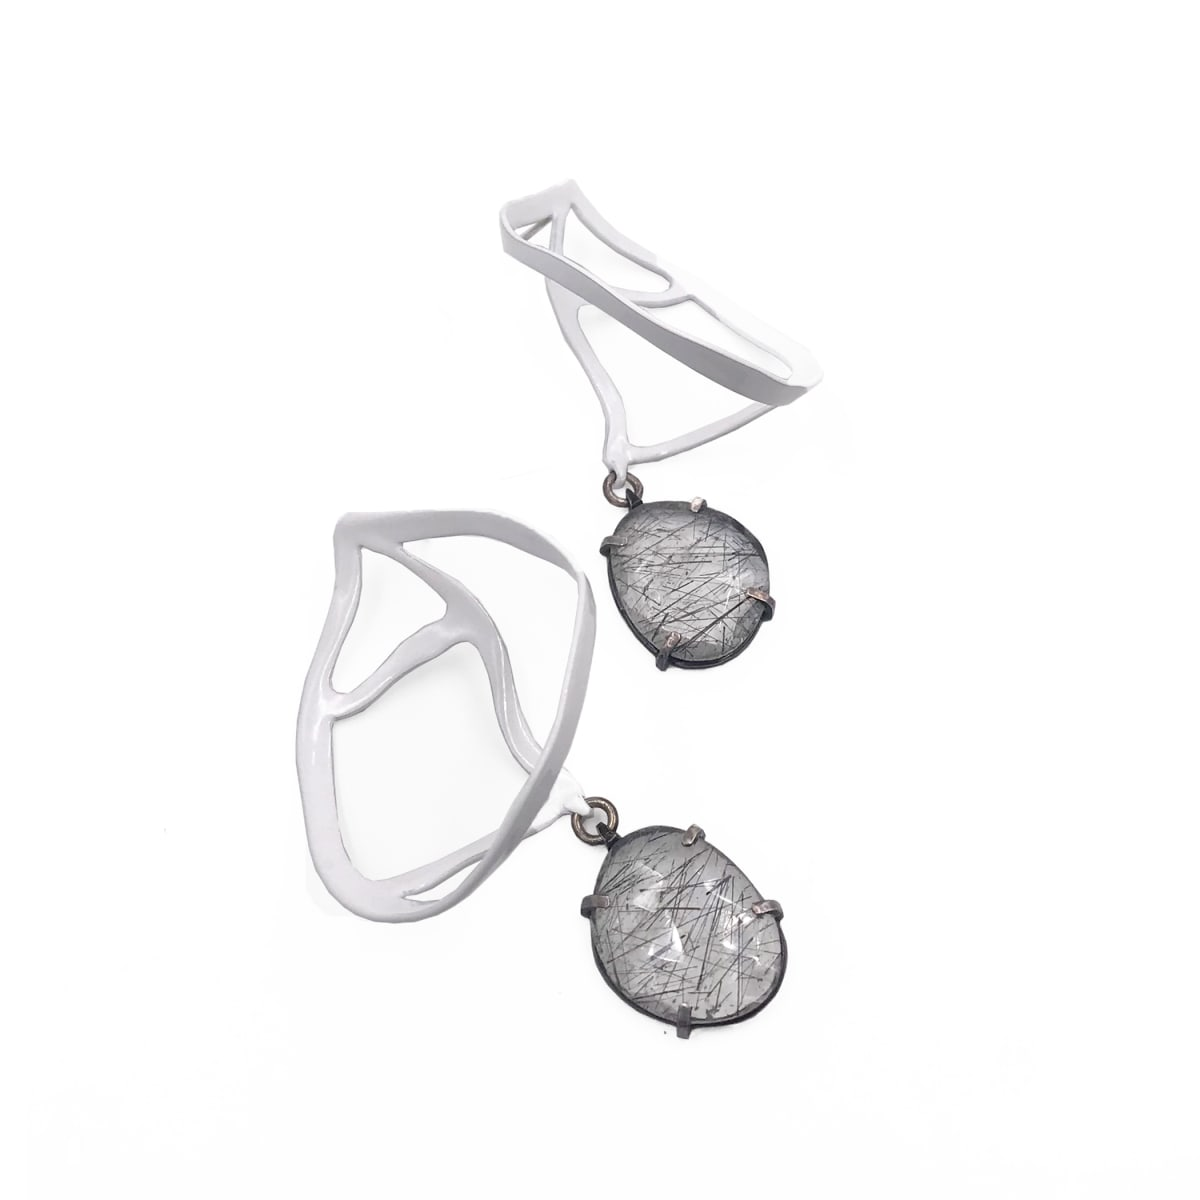 Laura Wood, Open Weave Fan Earrings